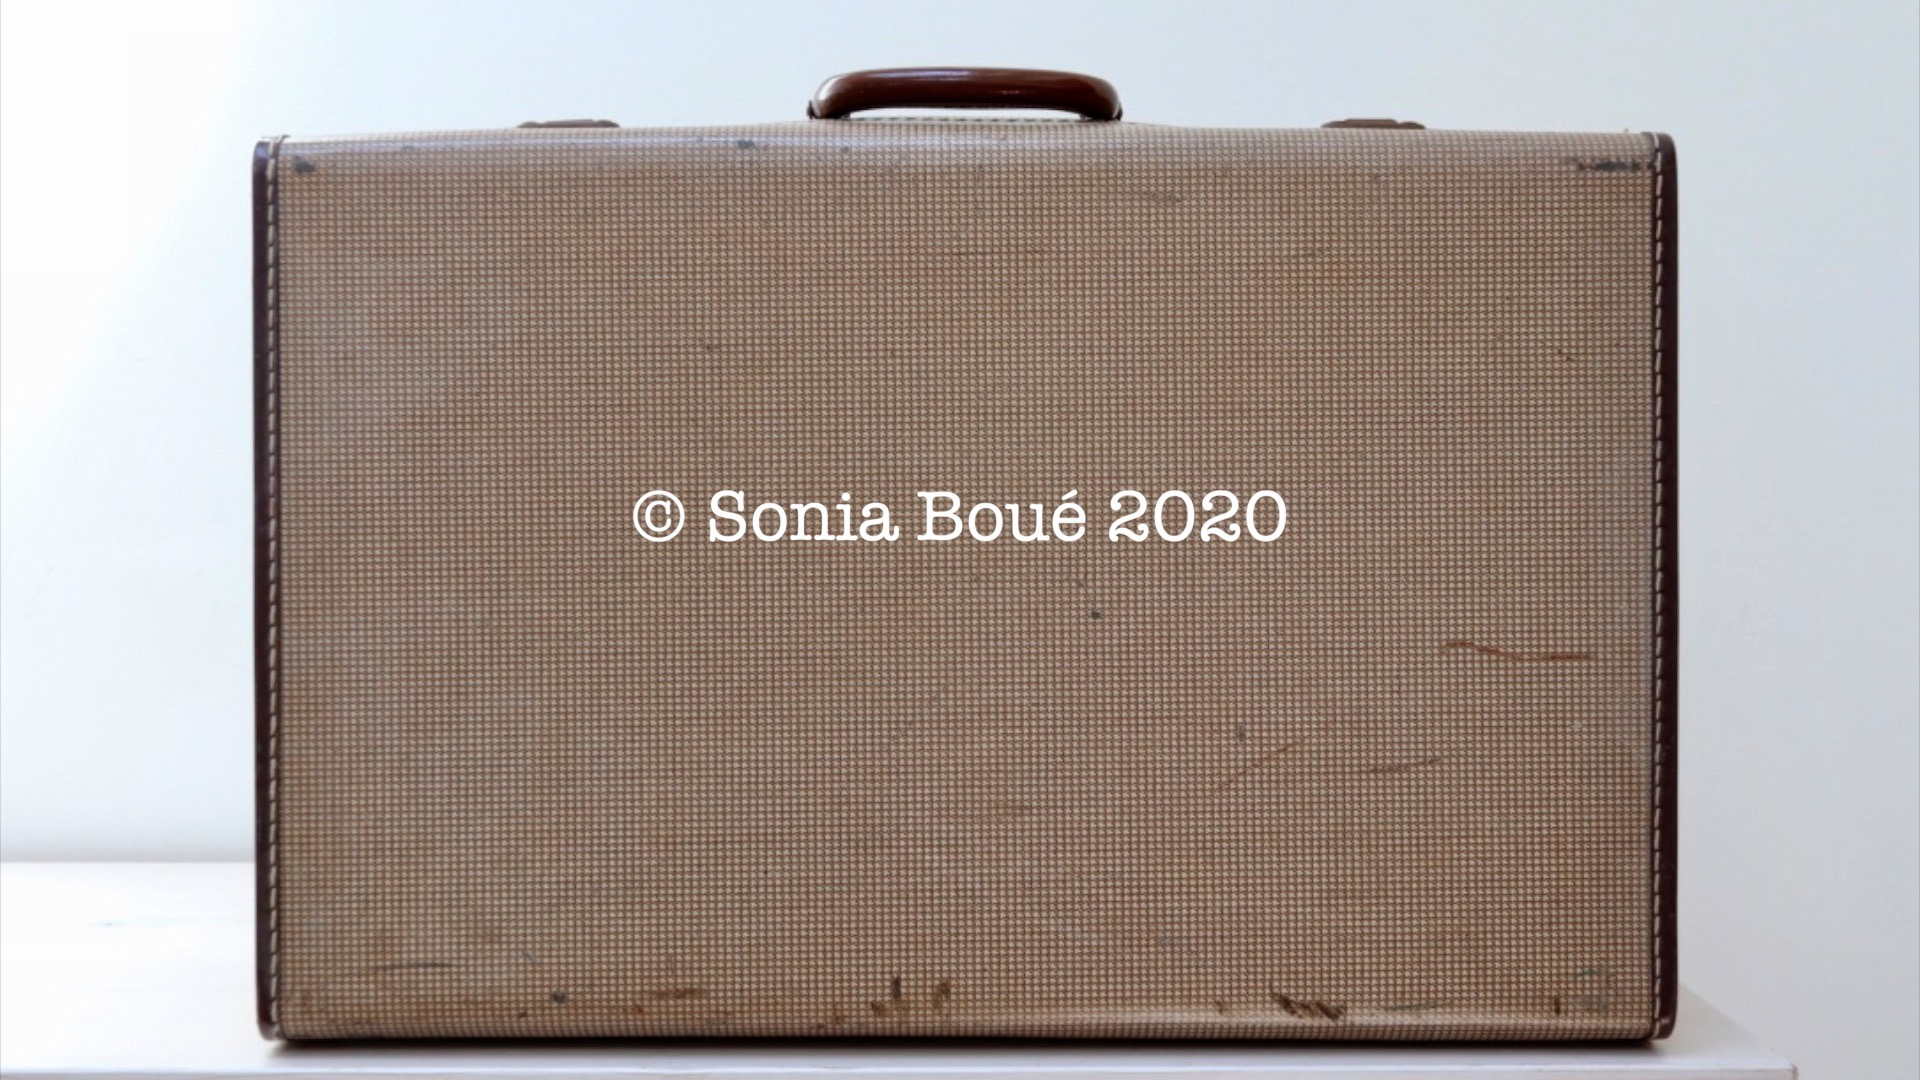 Light coloured vintage suitcase with typed lettering on it reading © Sonia Boué 2020